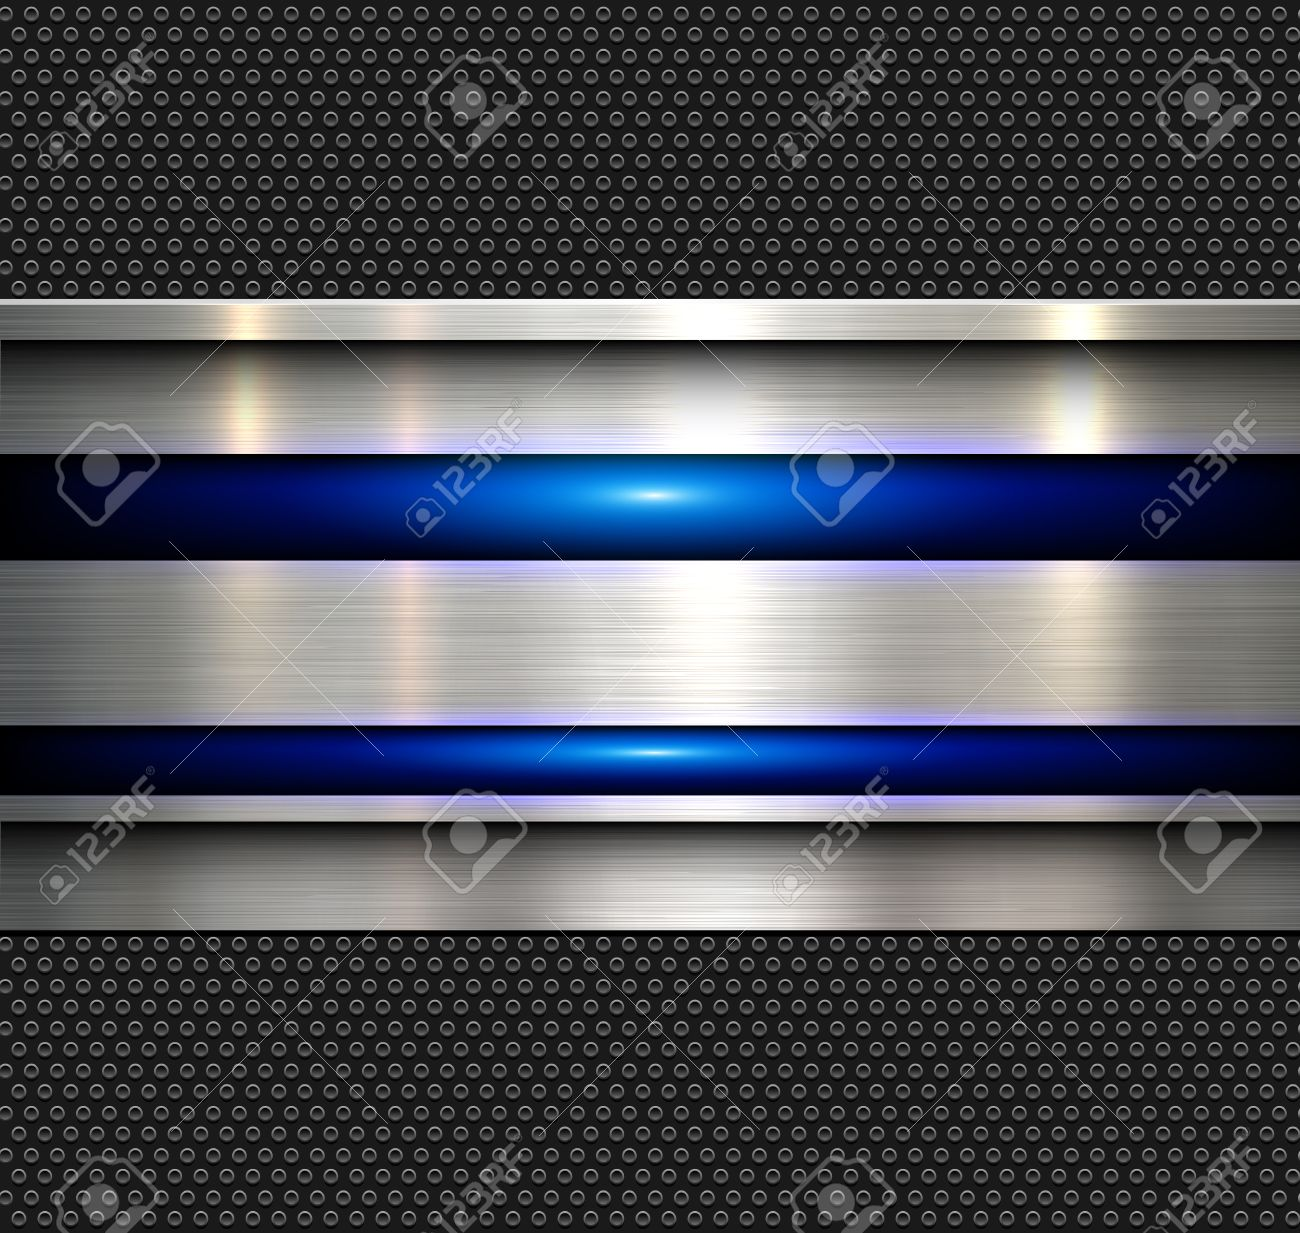 Background, polished metal texture with blue glossy lines, vector illustration. - 51746748